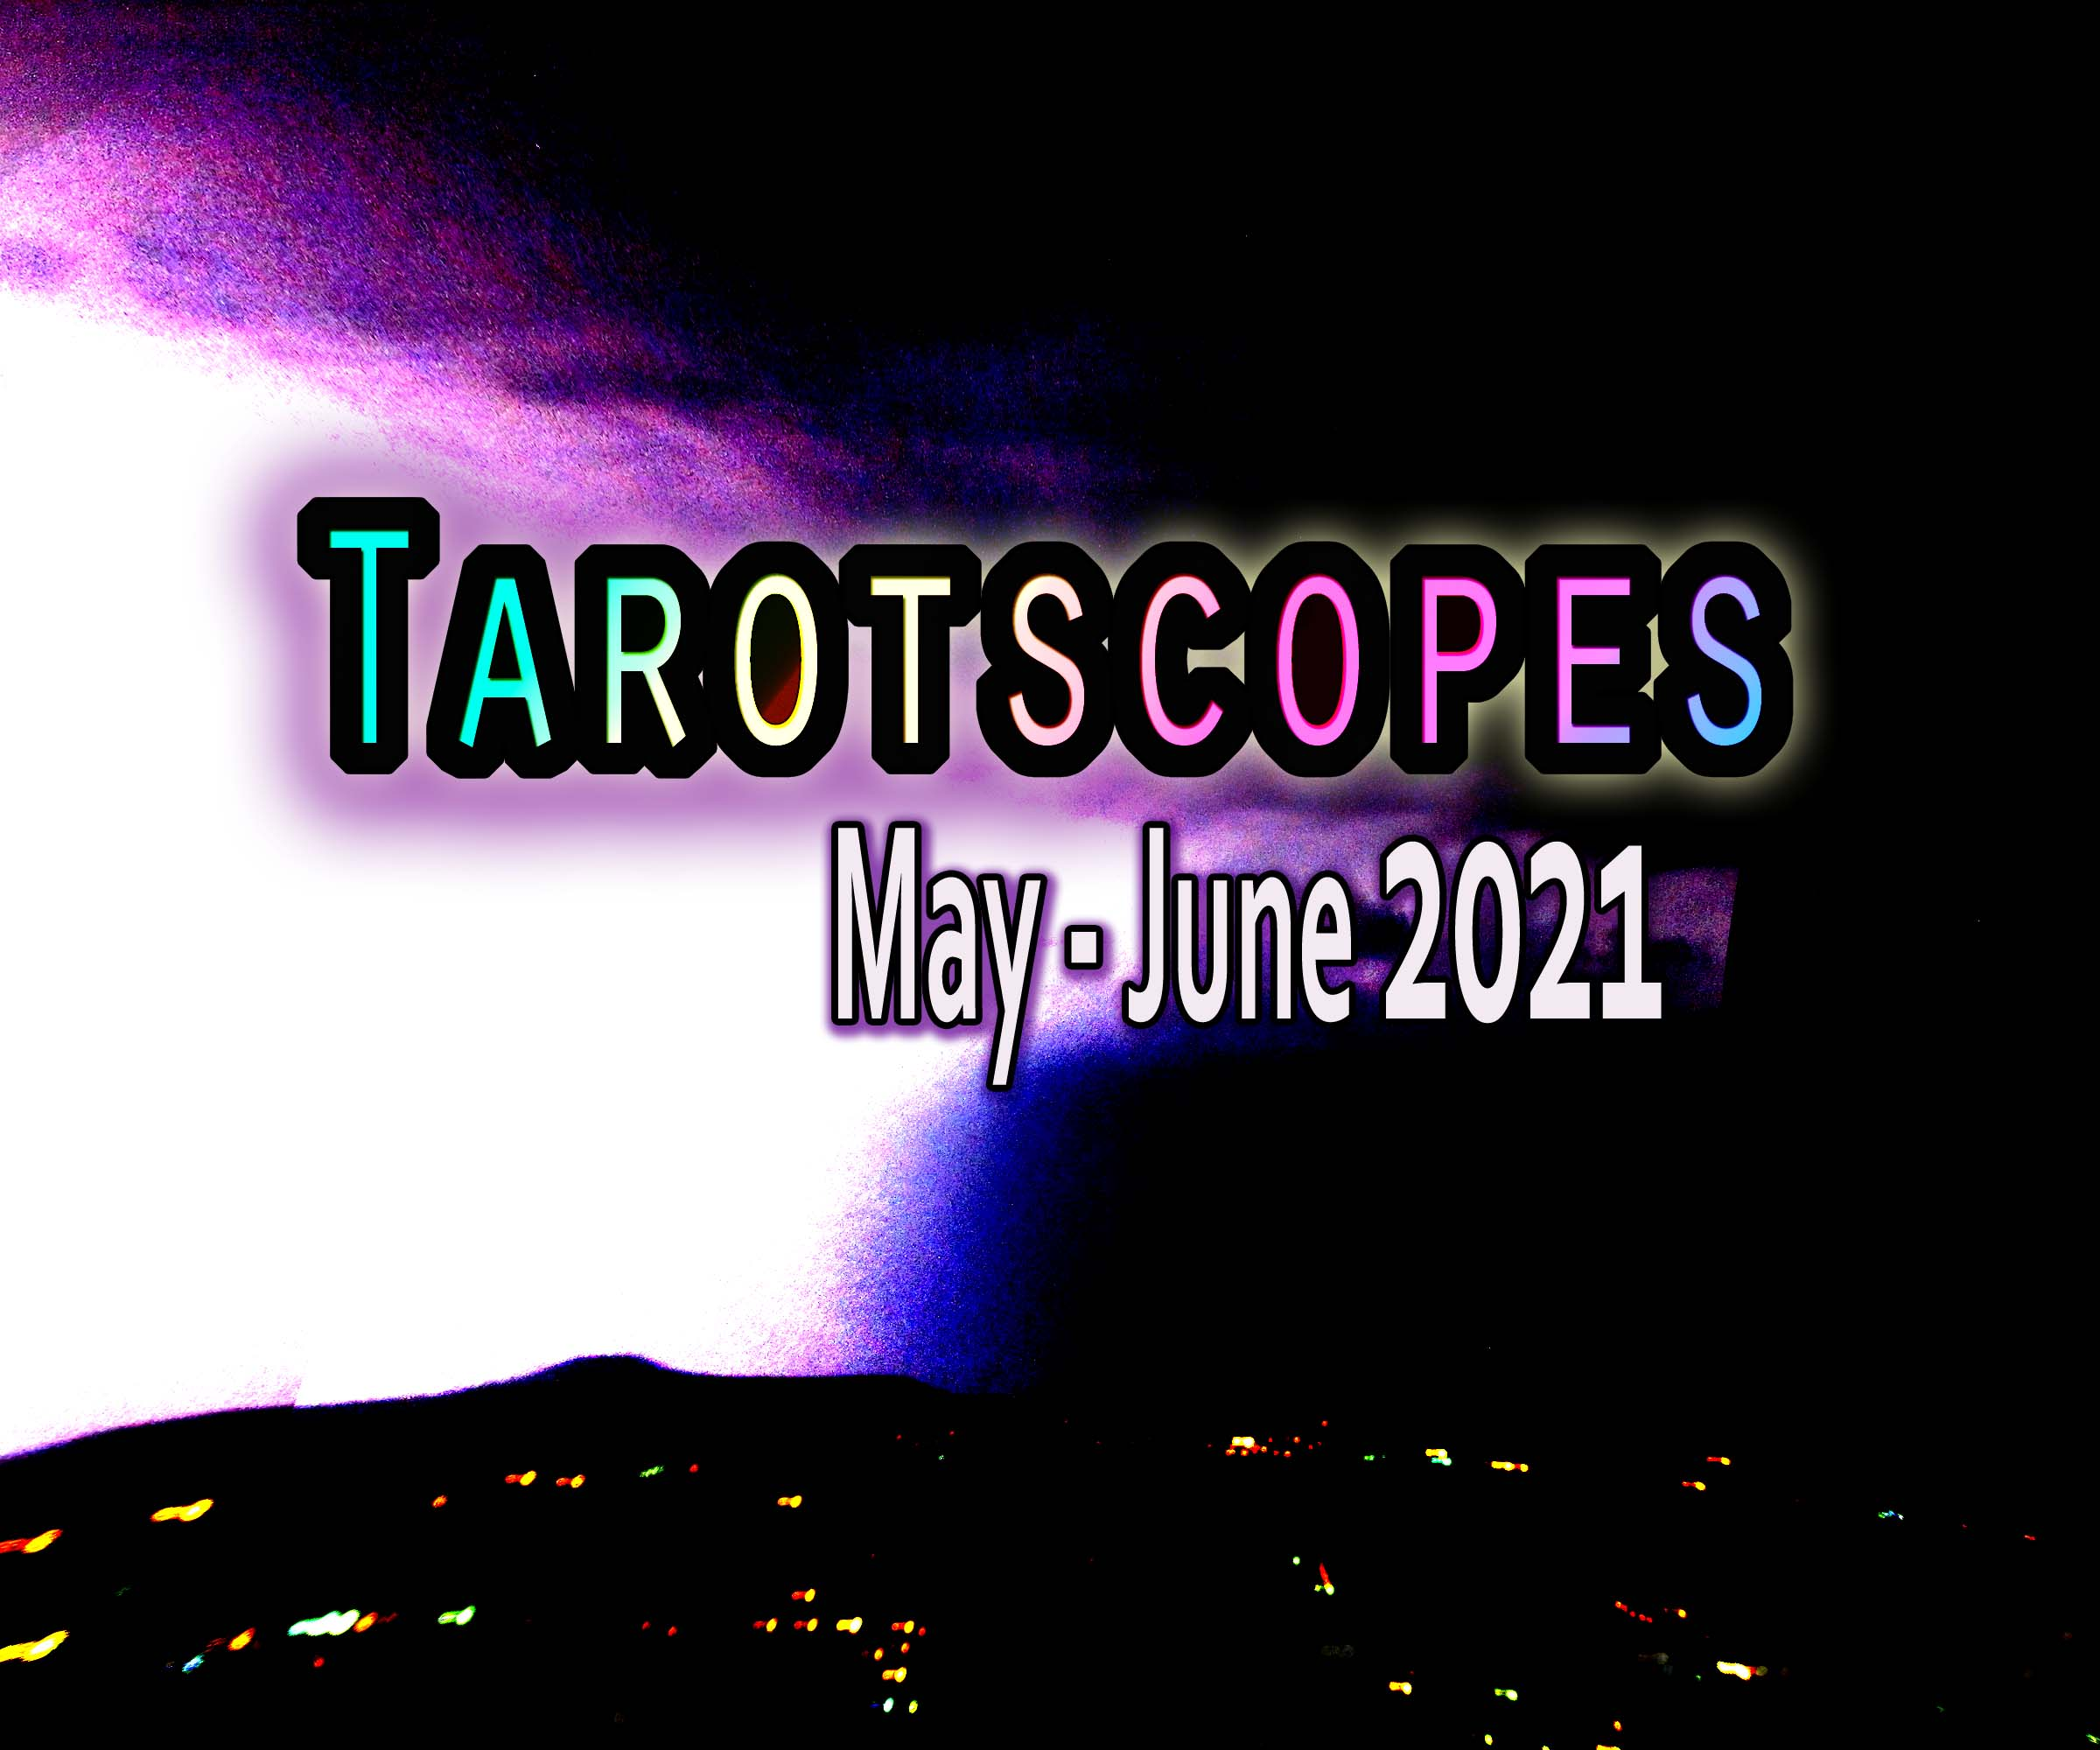 Tarotscopes May to June 2021